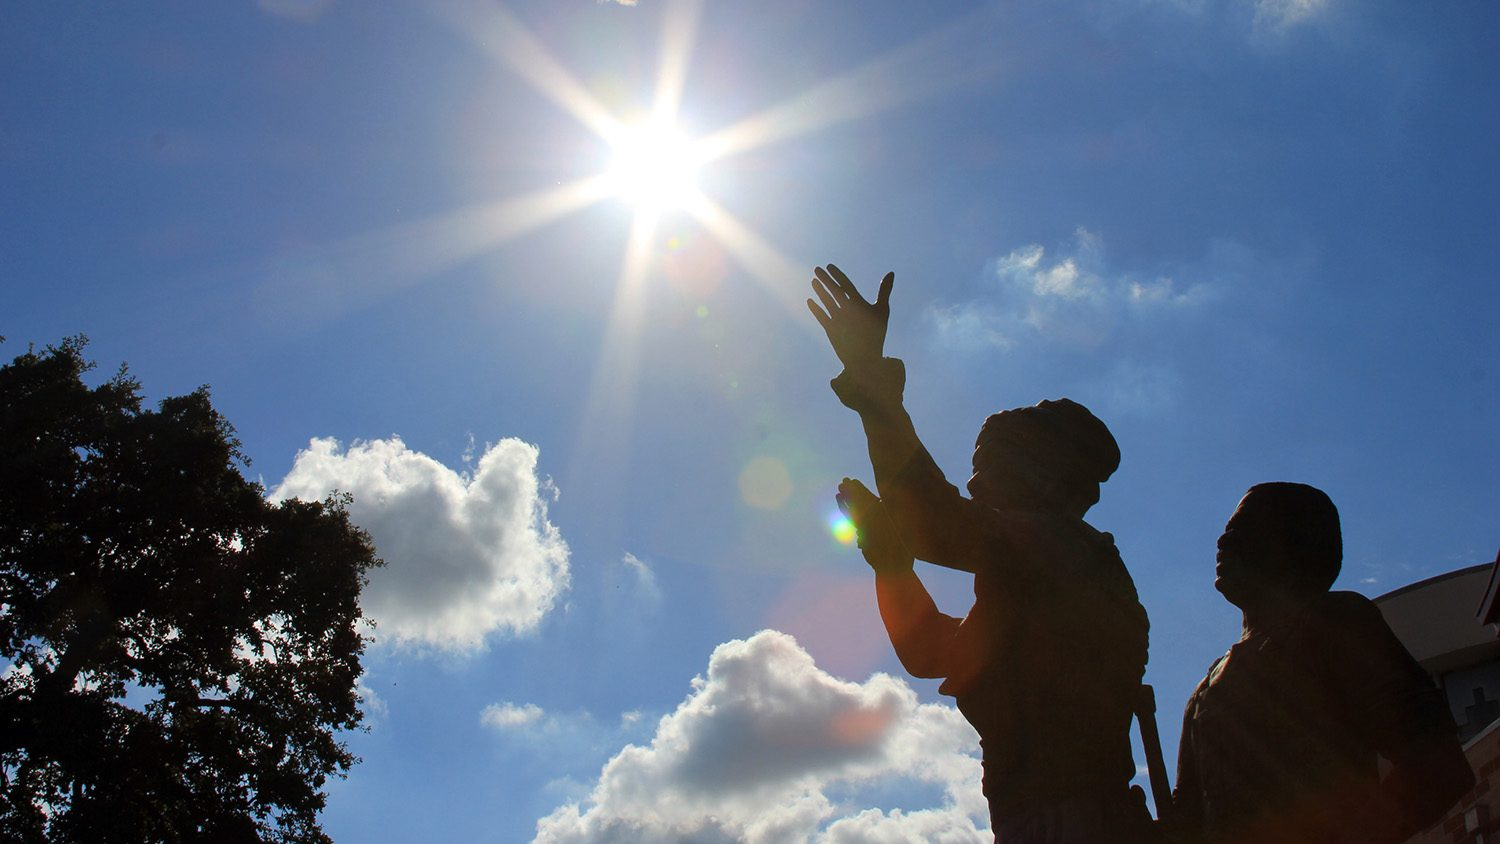 statues of a man and woman silhouetted against the sun